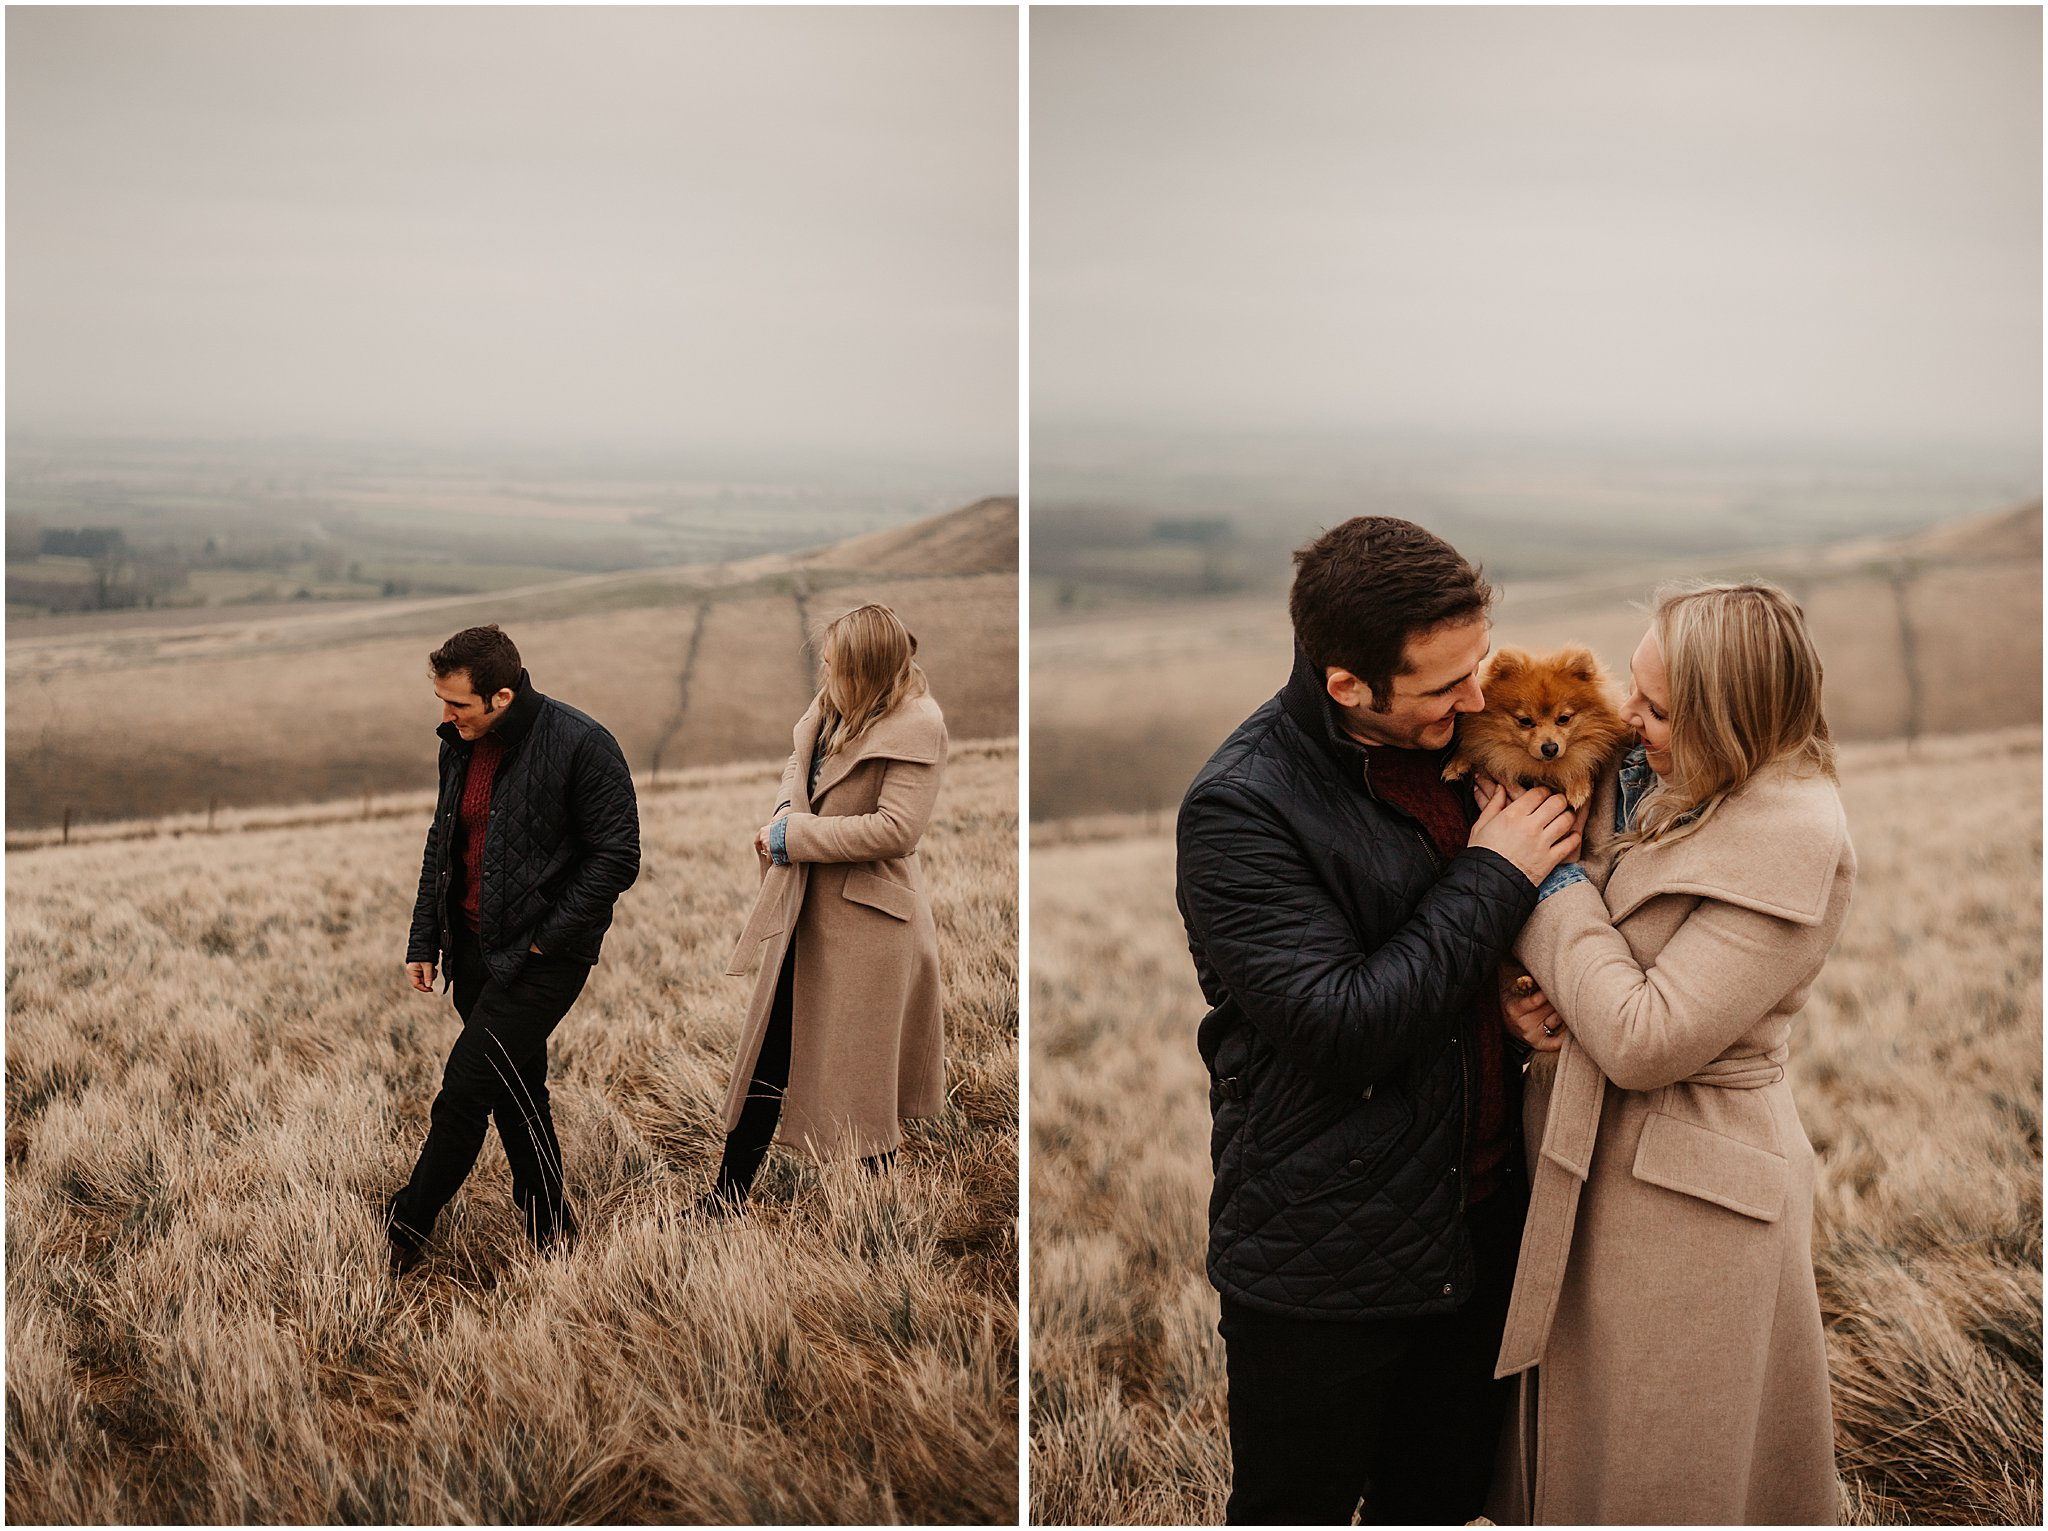 Mike & Charley_s Winter Engagement Shoot Wiltshire-3.jpg